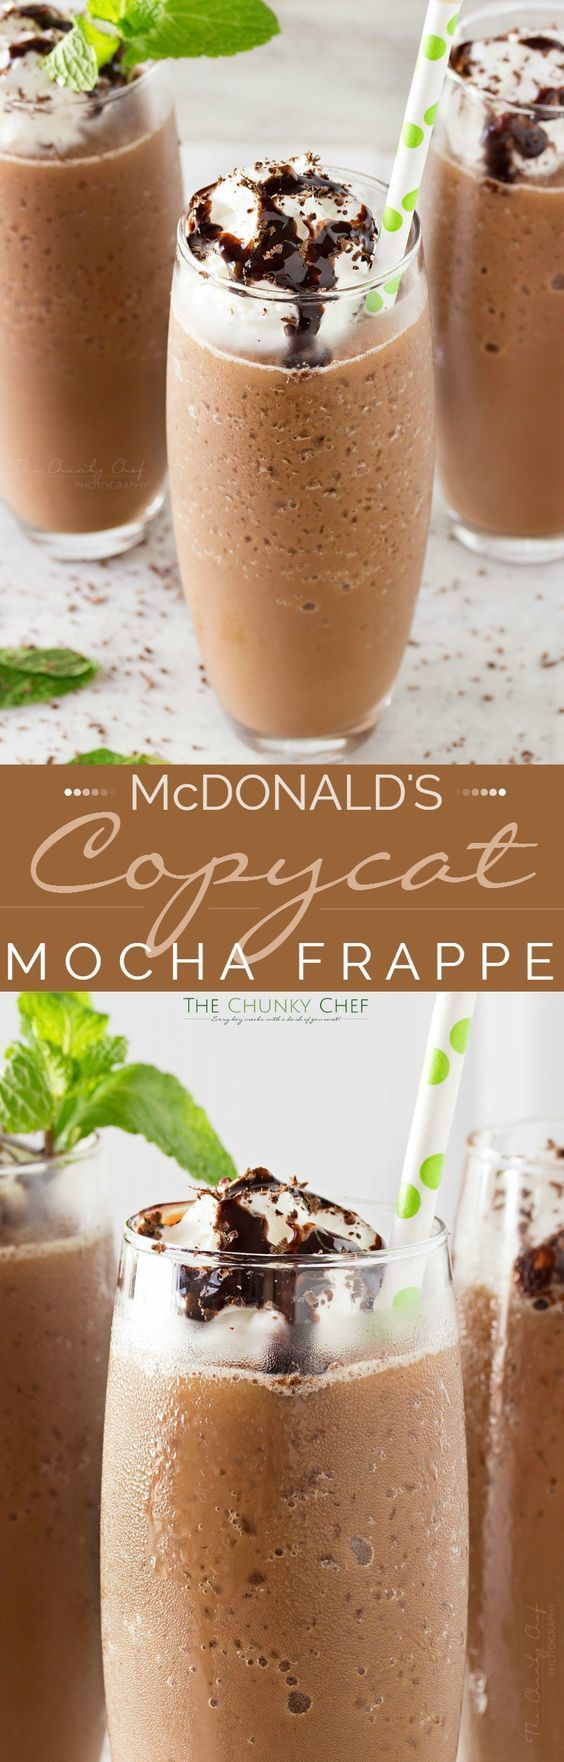 Copycat Mocha Frappe | Just 4 ingredients! Forget spending your money on a frozen coffee drink, make your own mocha frappe at home!!